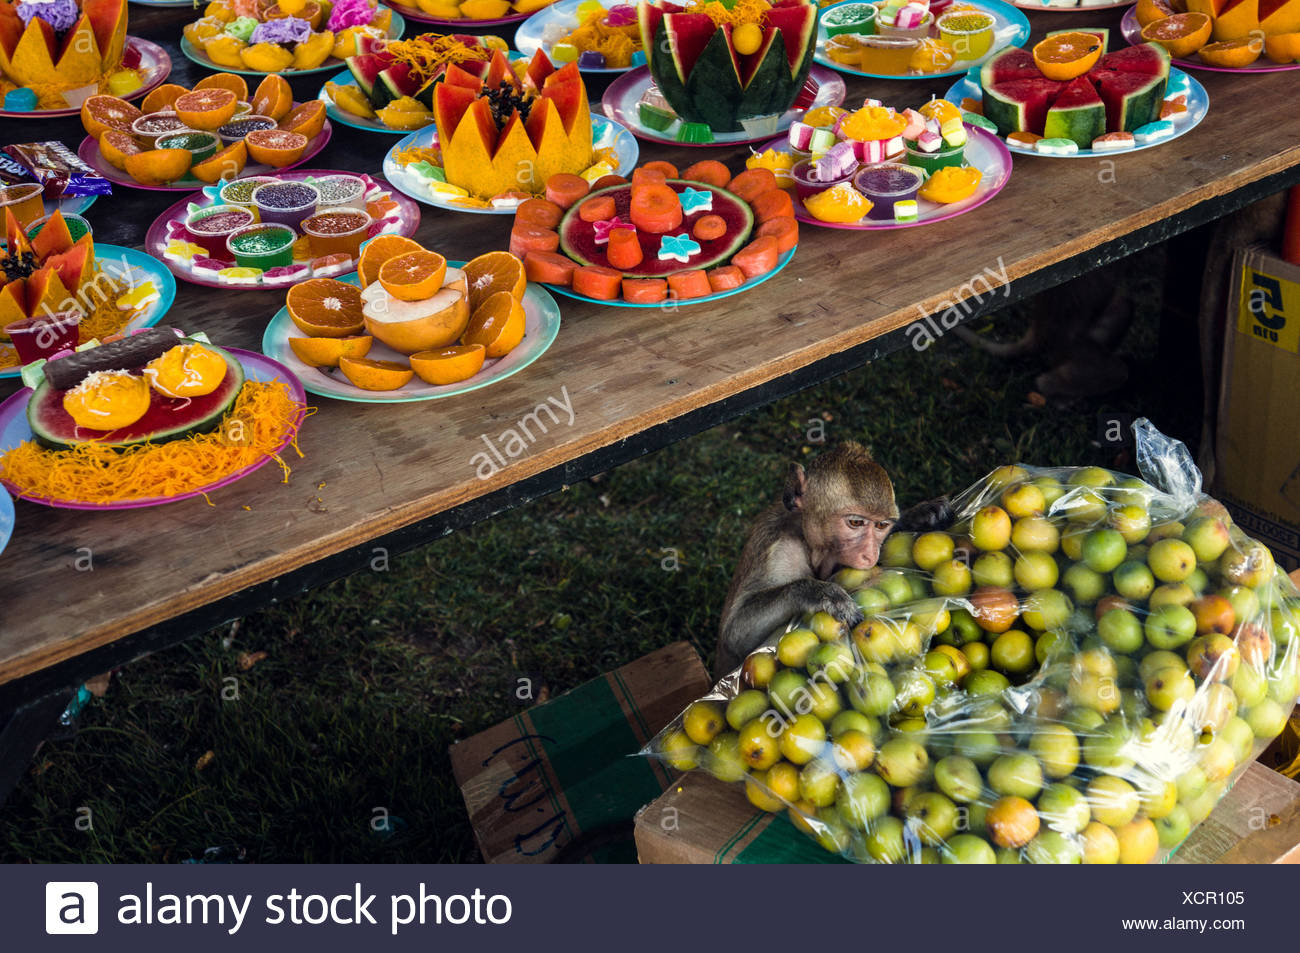 Monkey In Food Stall In Traditional Festival - Stock Image